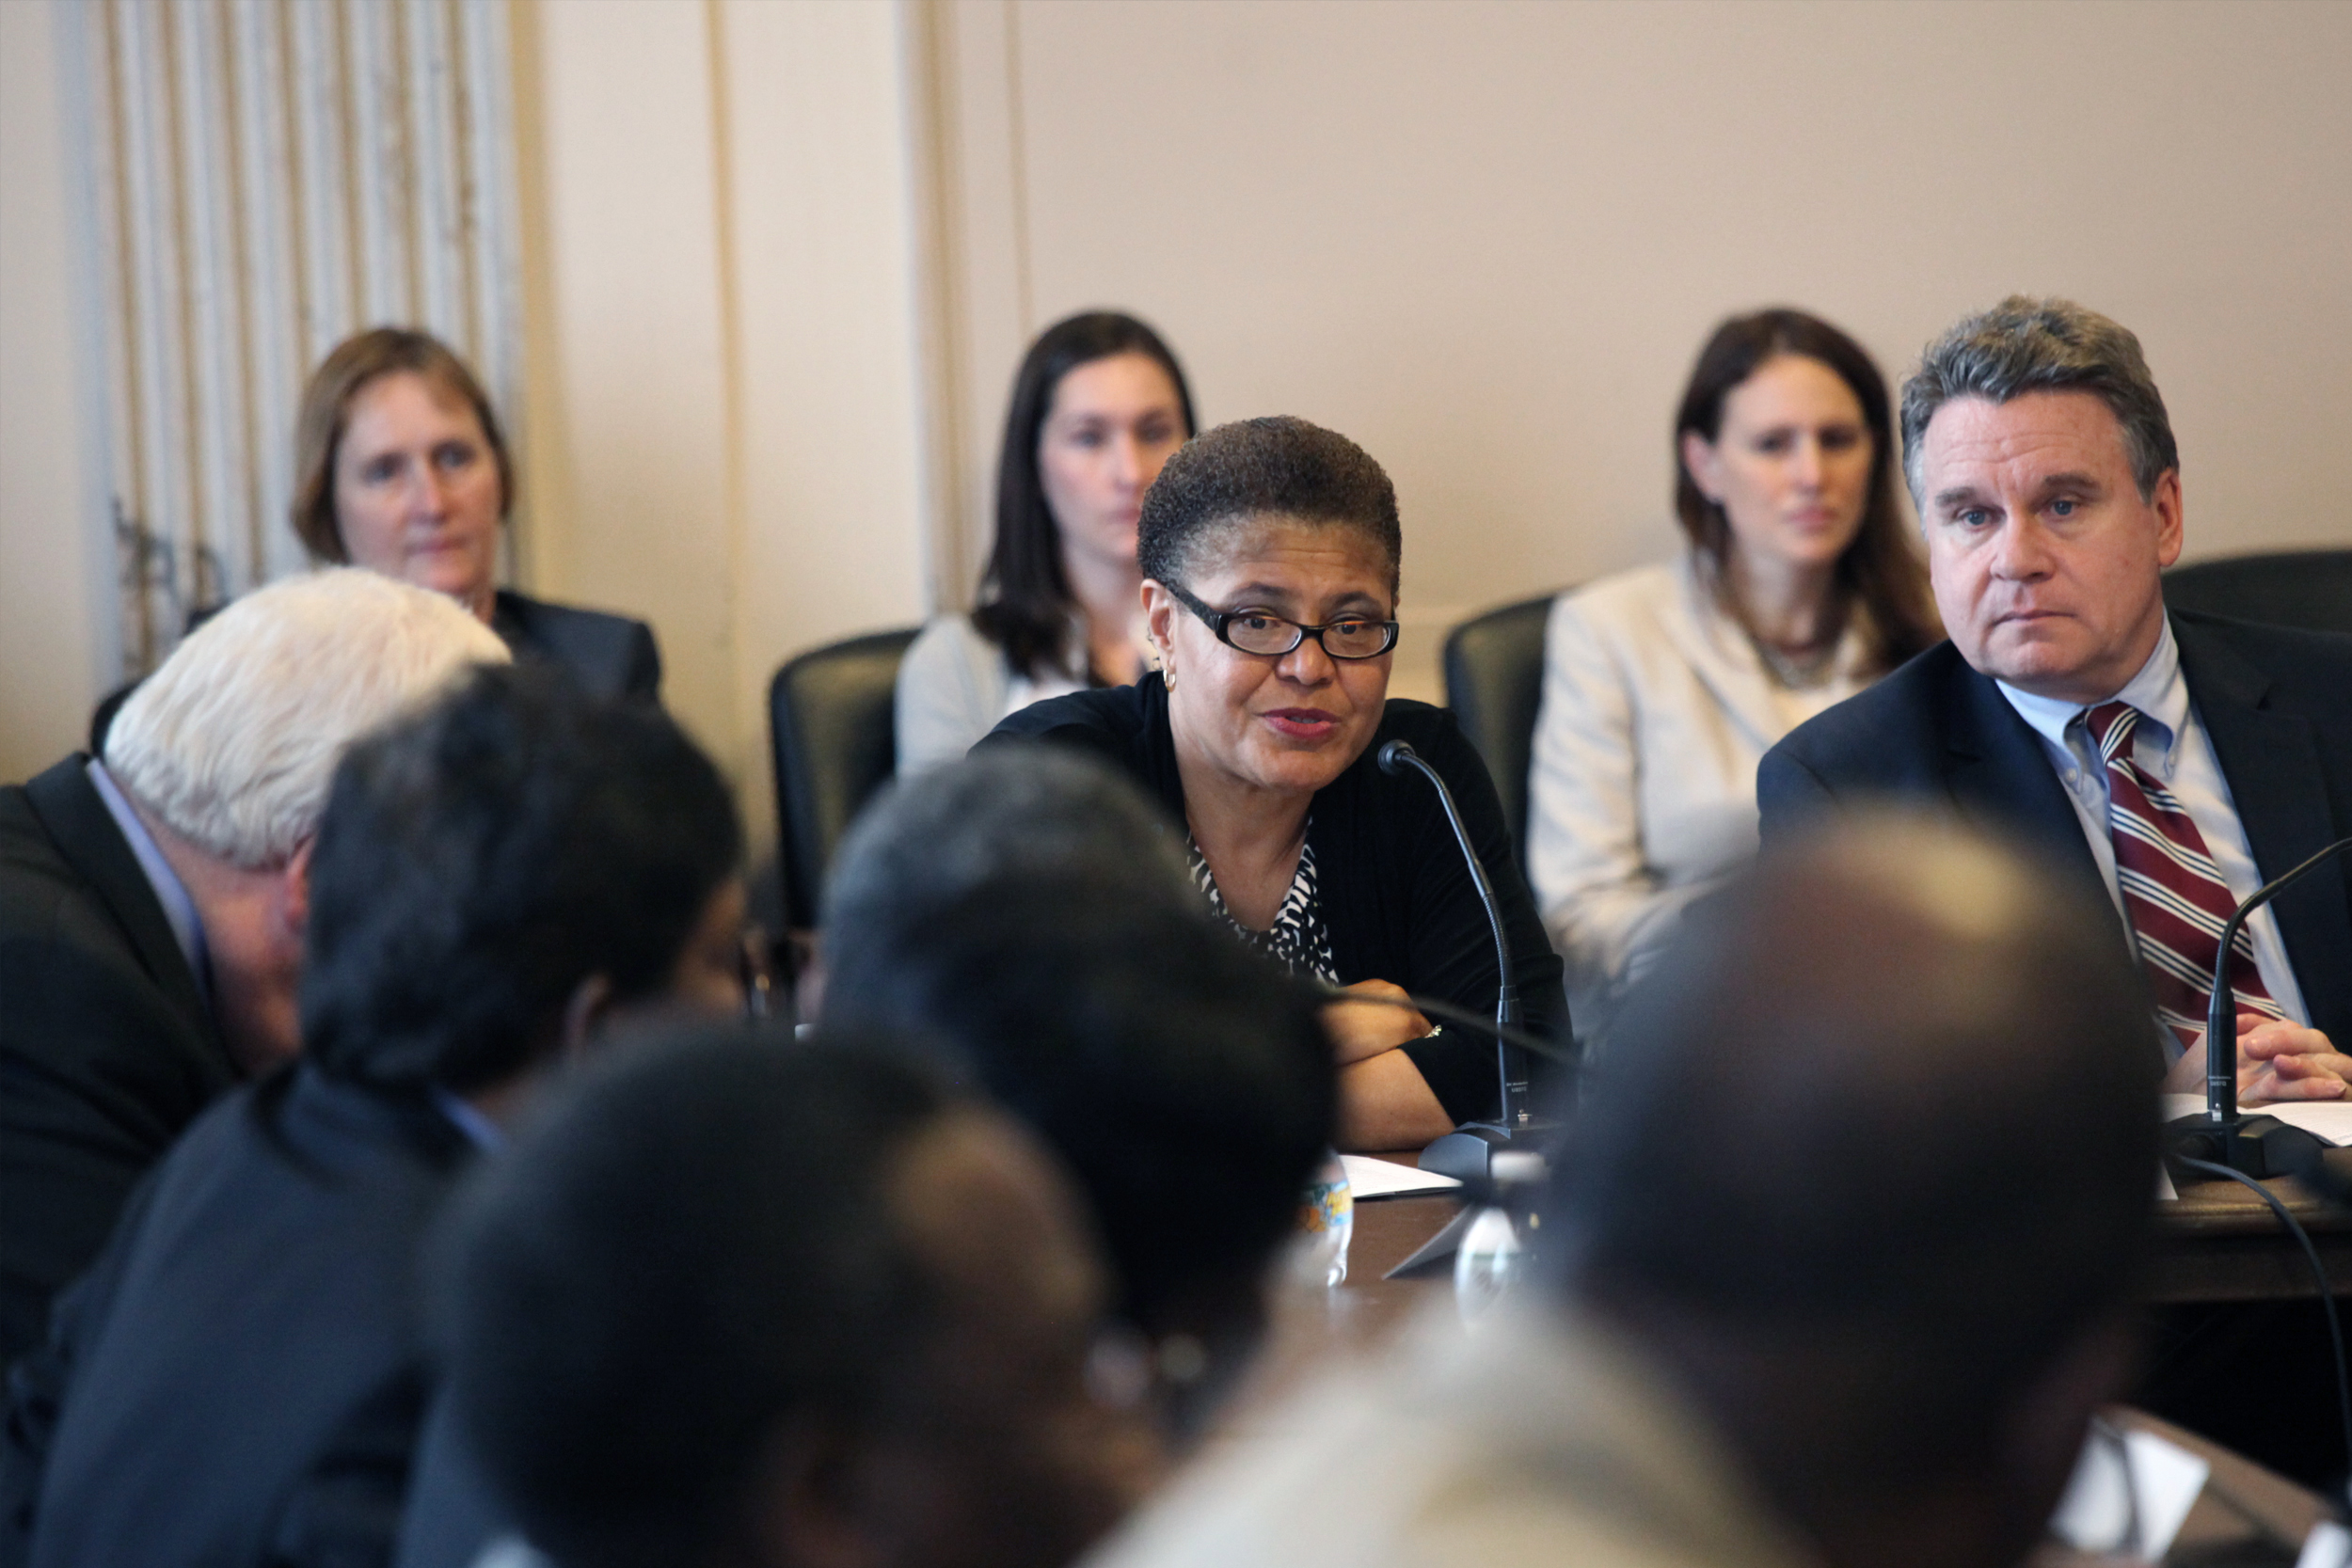 Karen Bass sits at a table surrounded by people